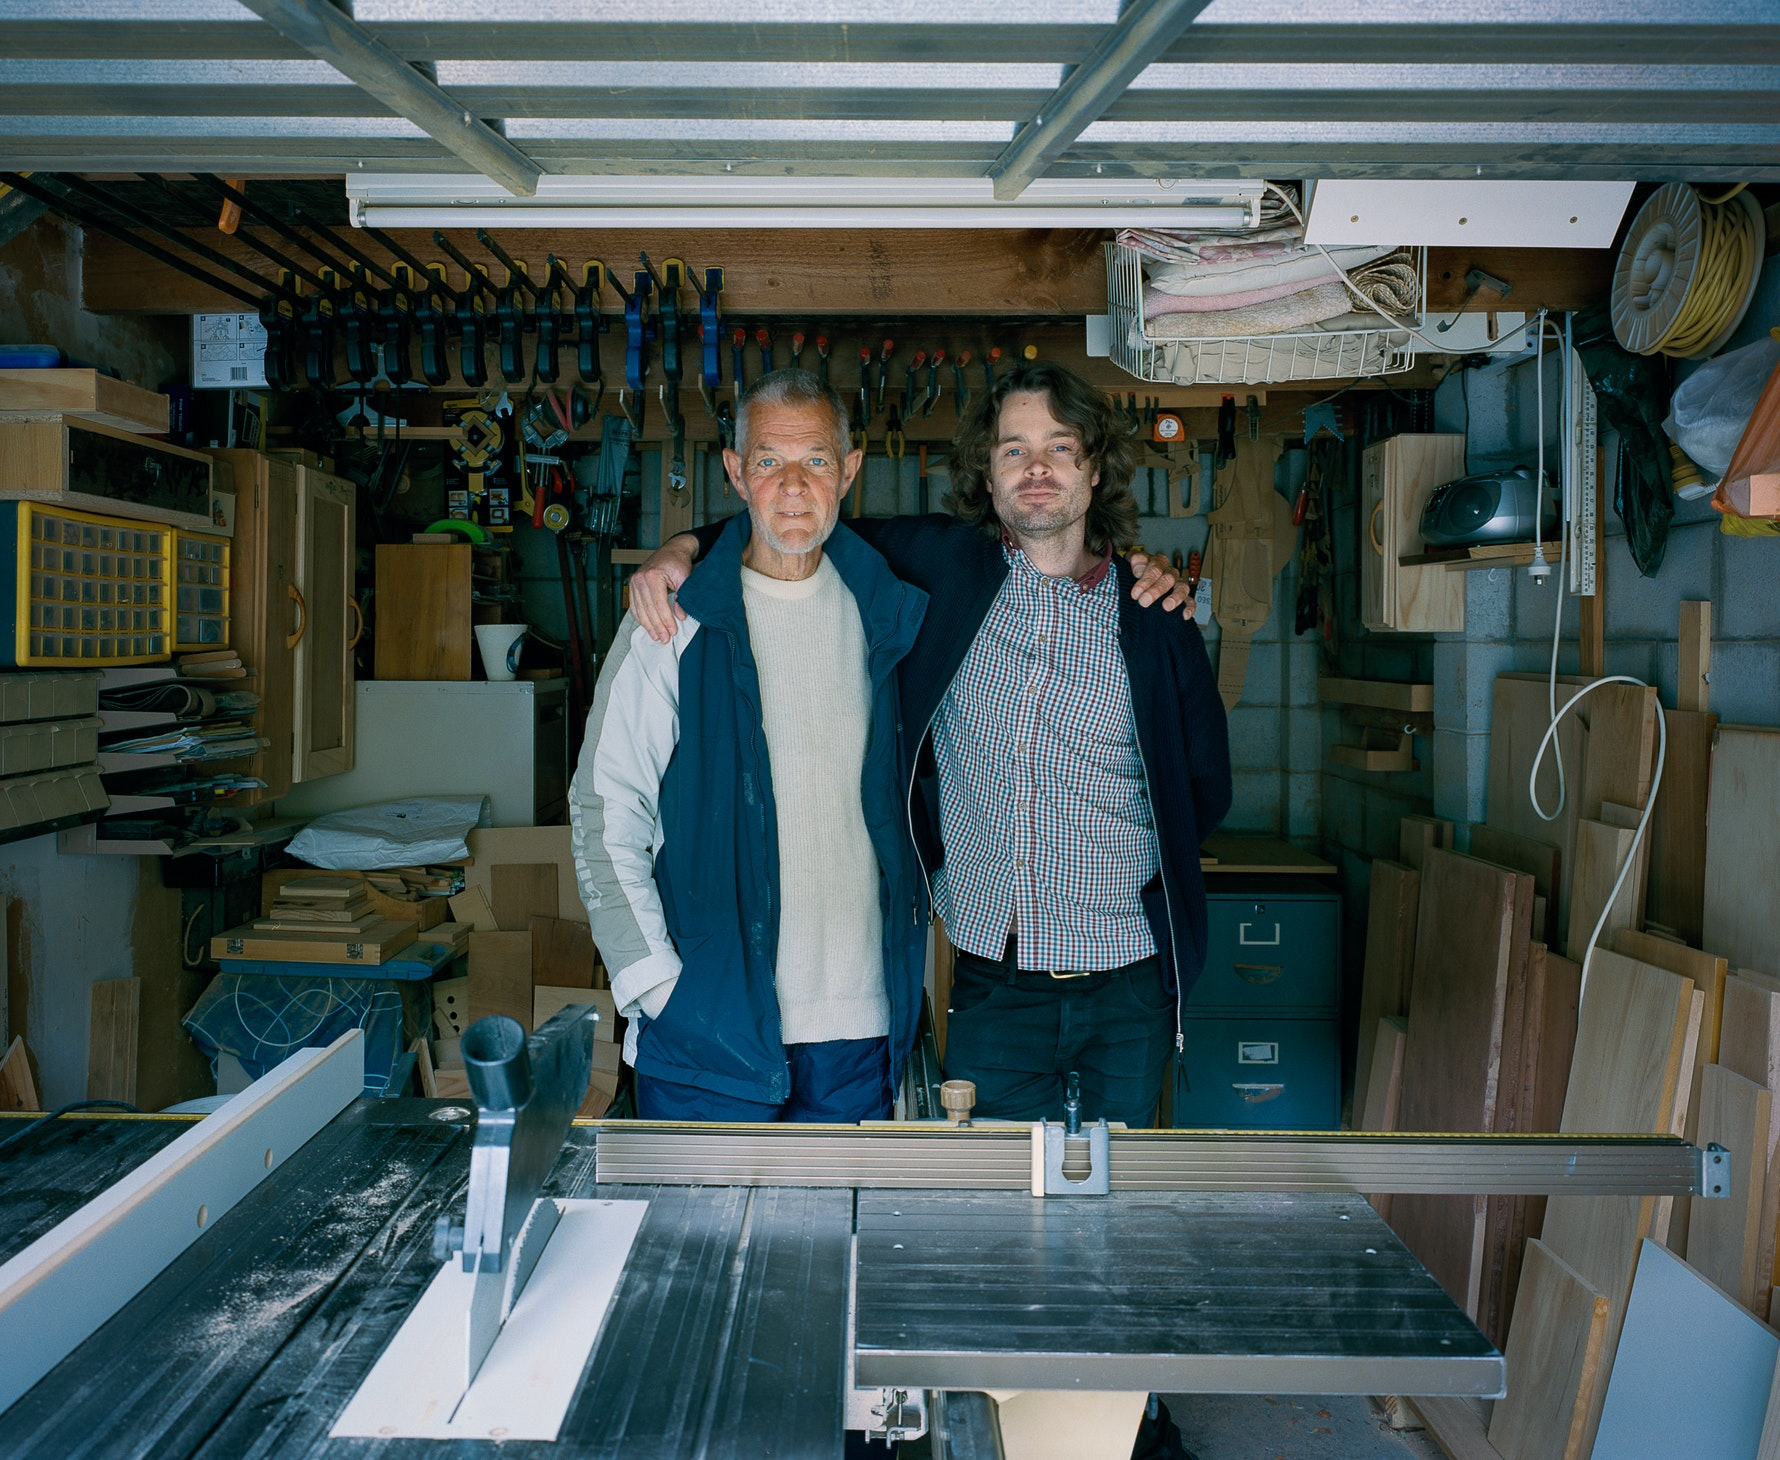 Peter and Tim Veling in Peter's workshop, 13/11/2014.